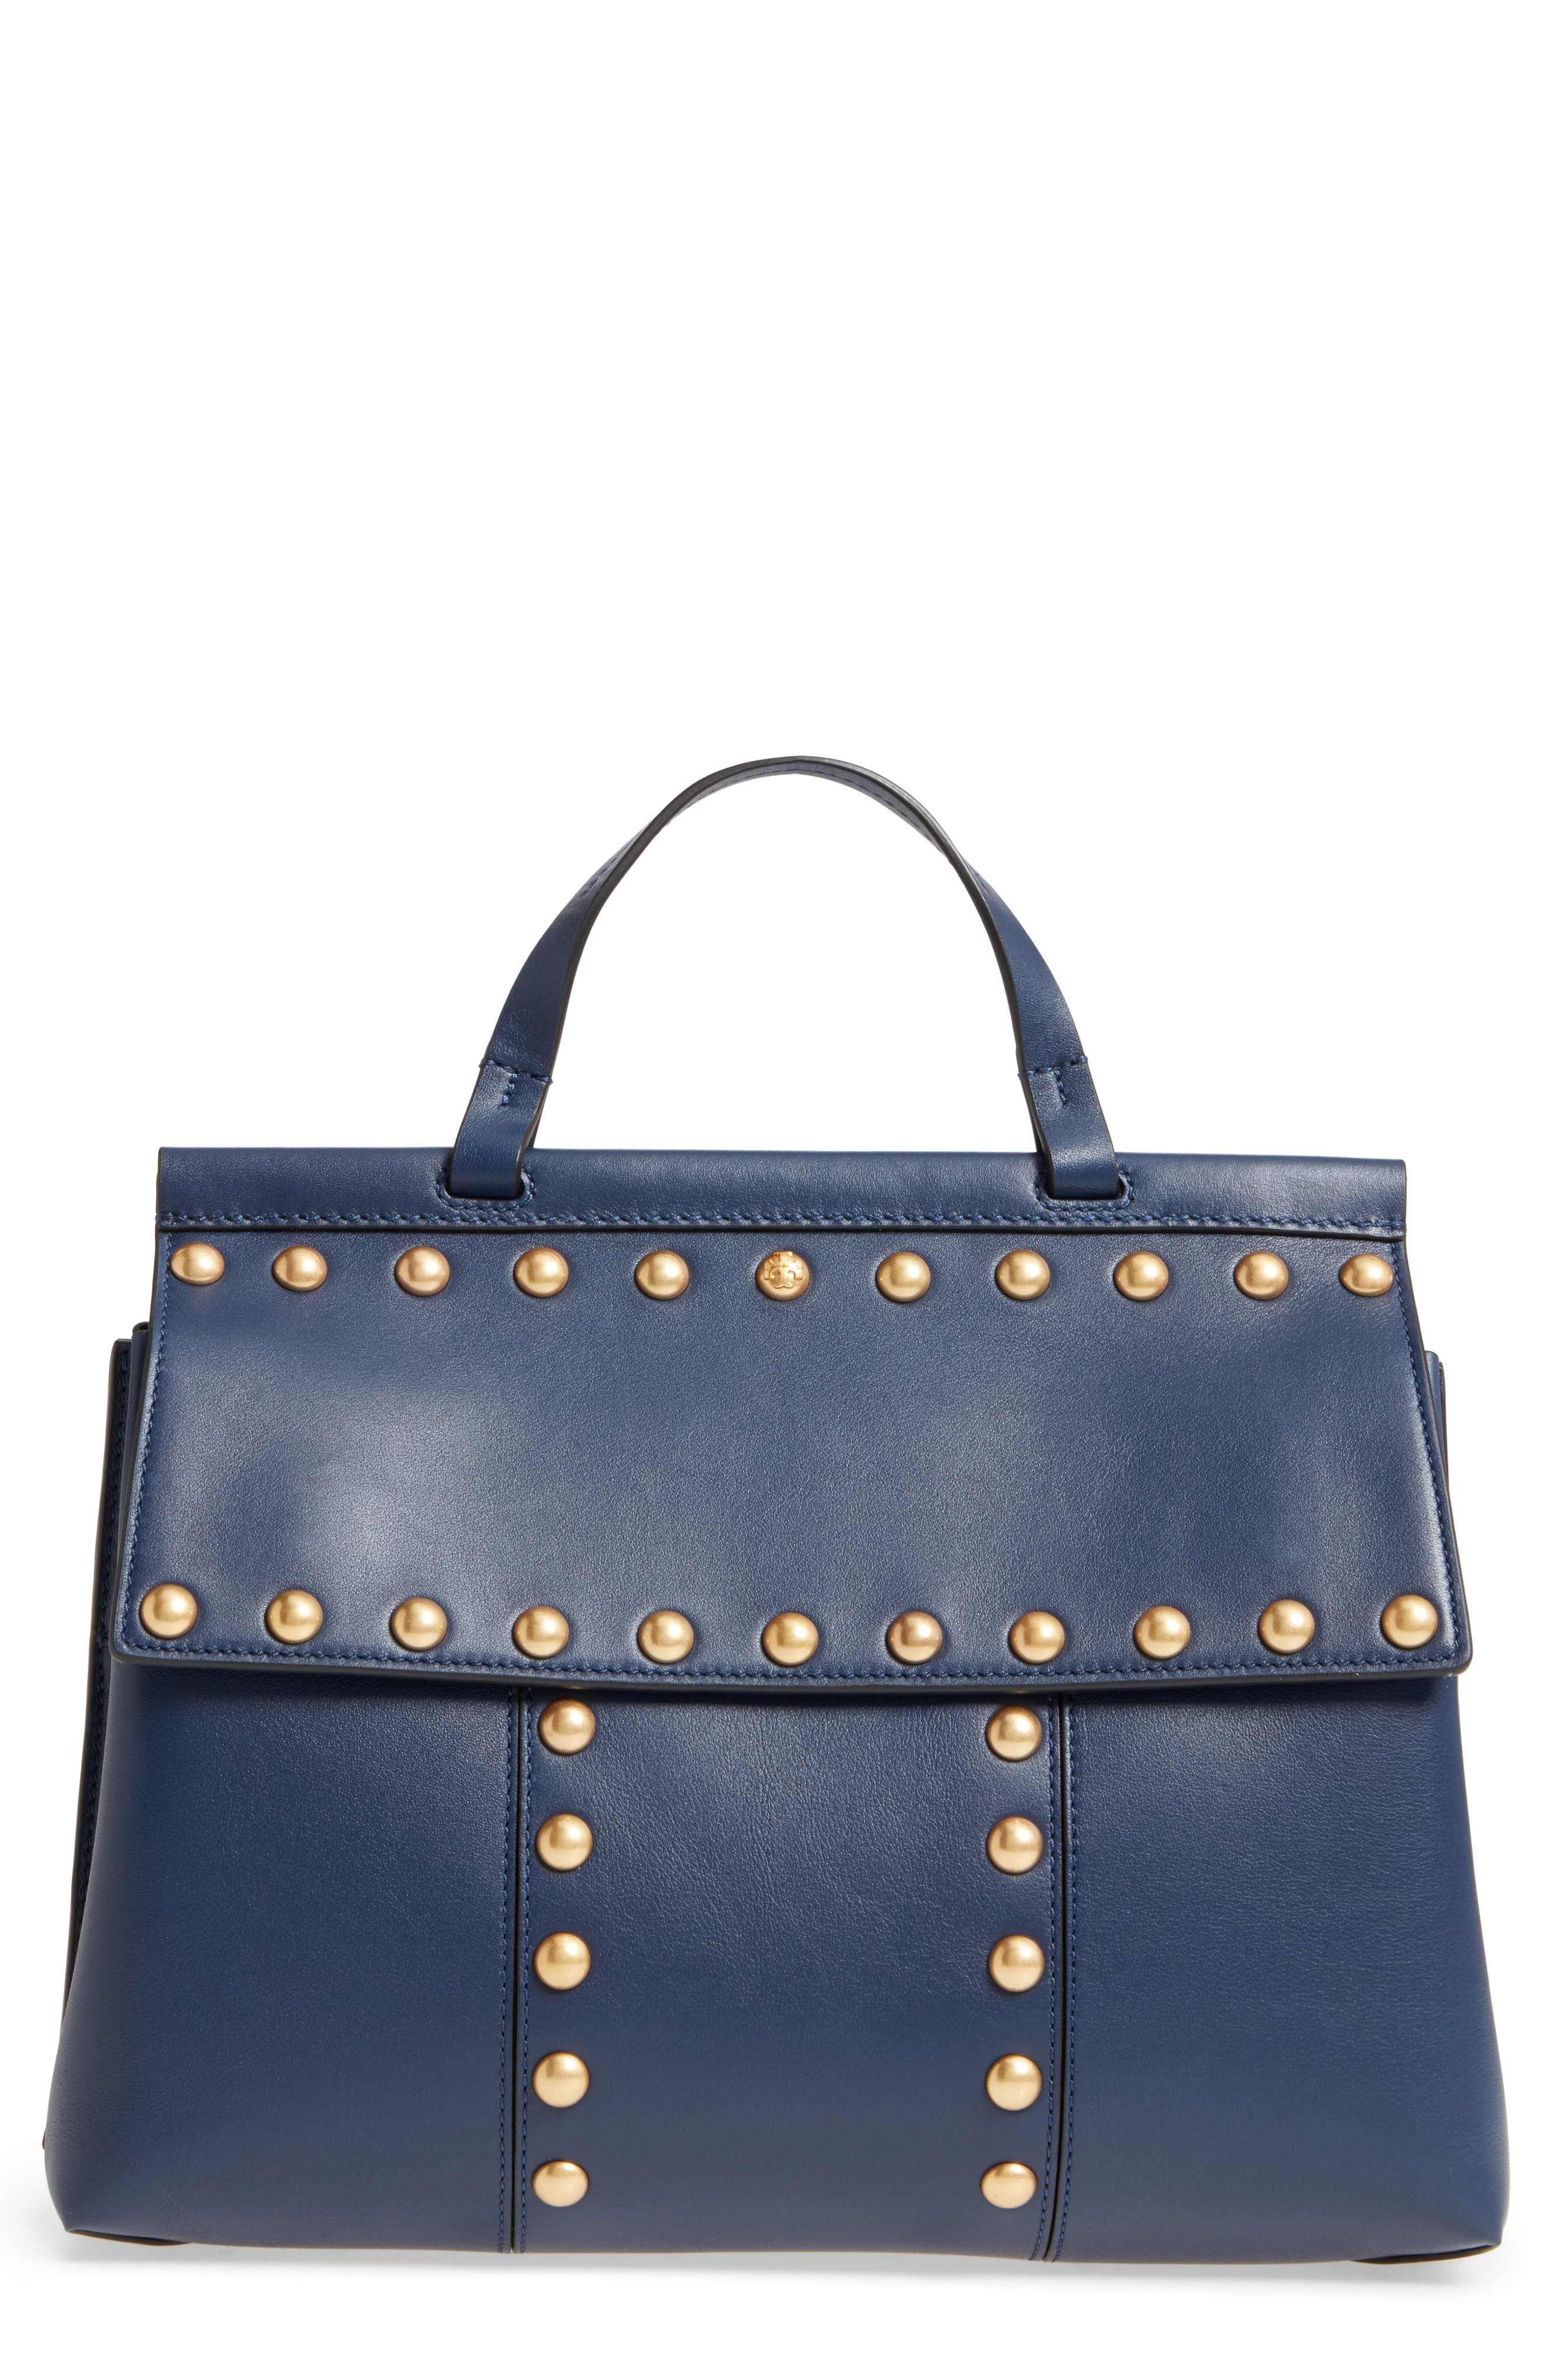 Block-T Studded Leather Top Handle Satchel,                             Main thumbnail 1, color,                             Royal Navy